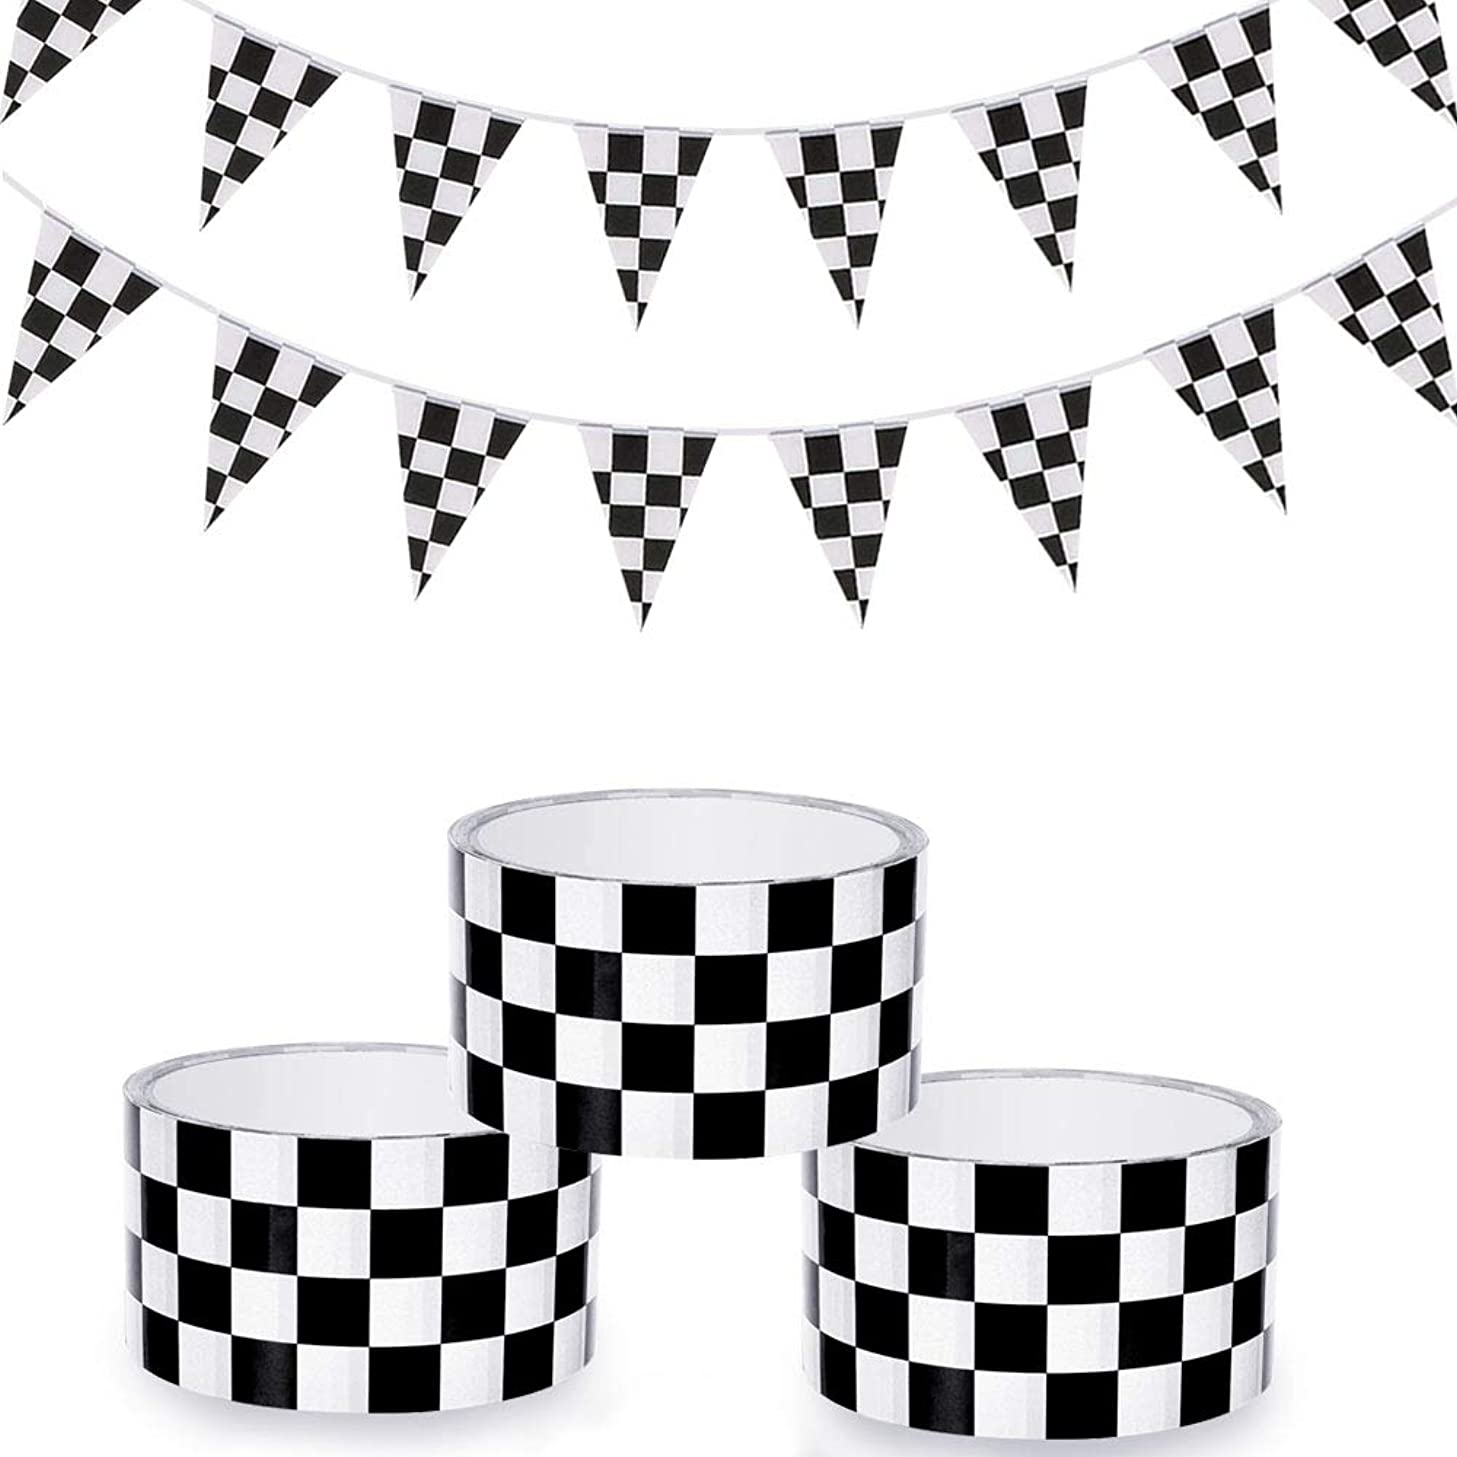 Homgaty 3 Rolls Checkered Flag Tape Black and White Checkerboard Tape with 26 ft Racing Pennant Flag Banners,Race Car Party Supplies & Decorations